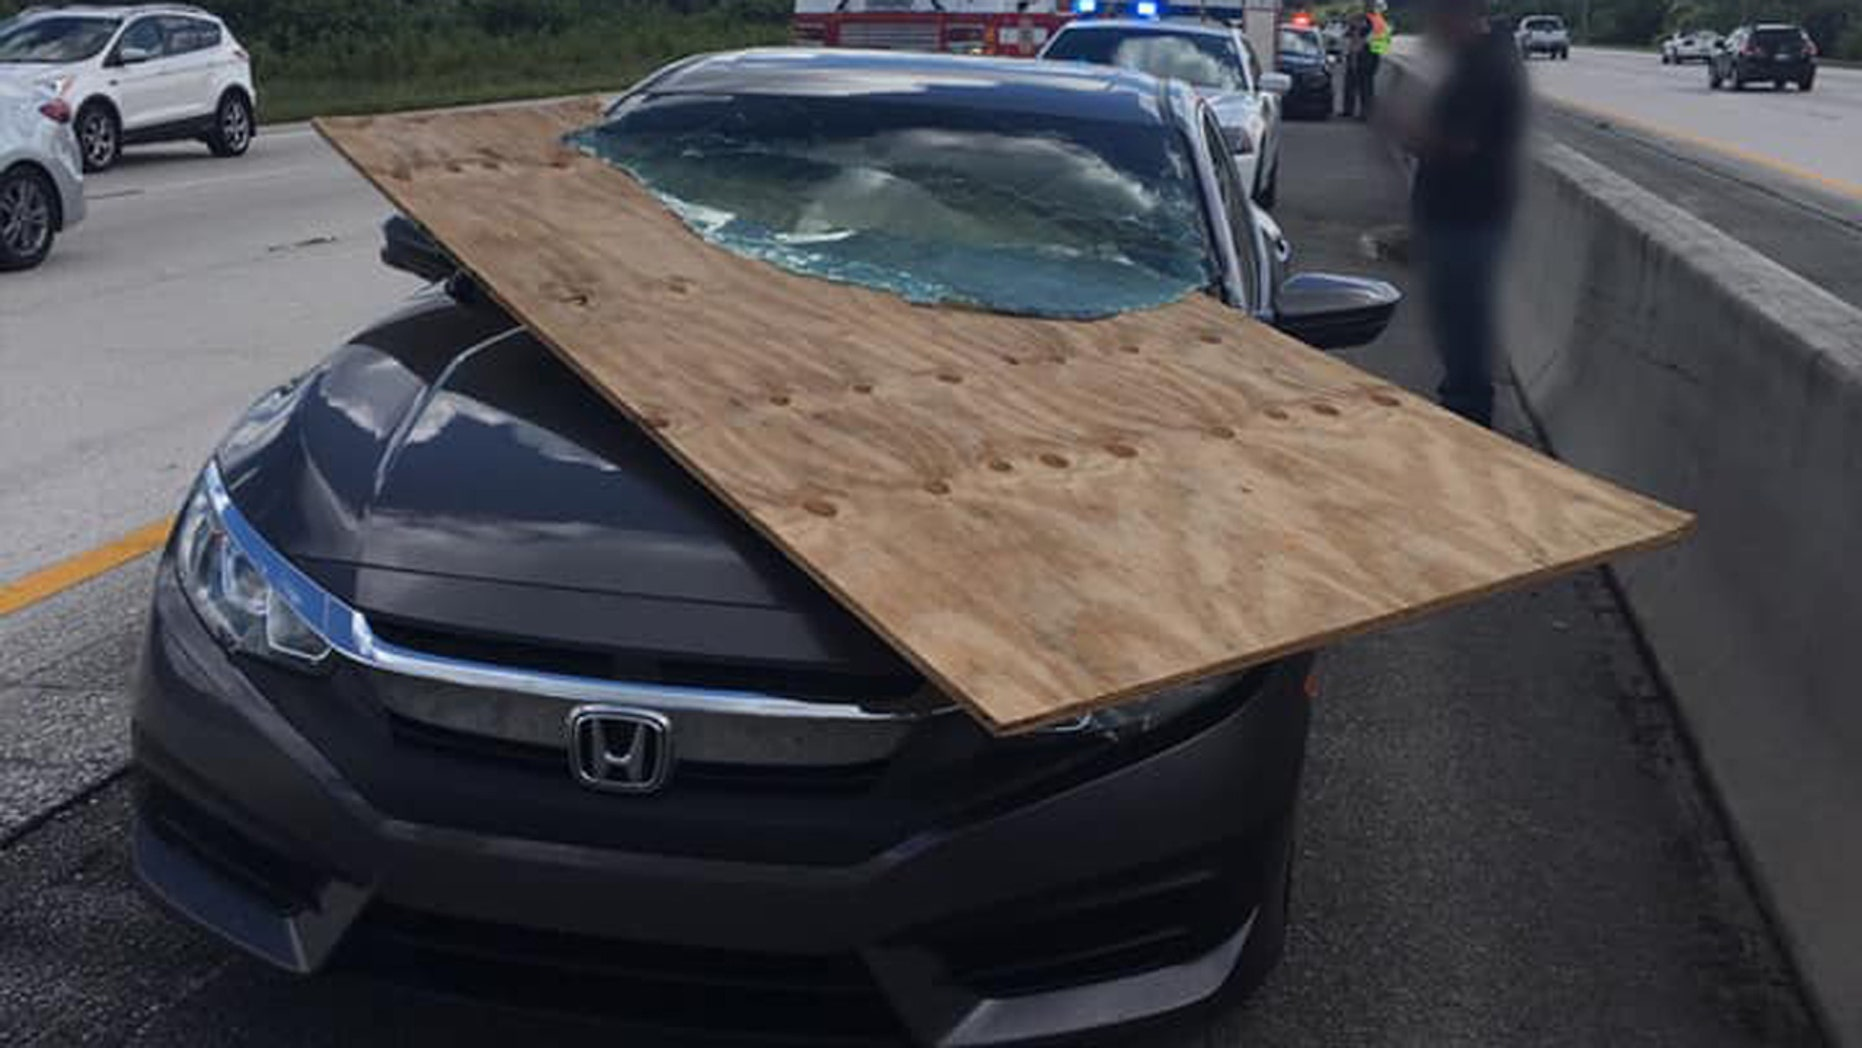 A motorist in Florida had a near-miss after a piece of plywood flew off a truck and became impaled in her windshield.